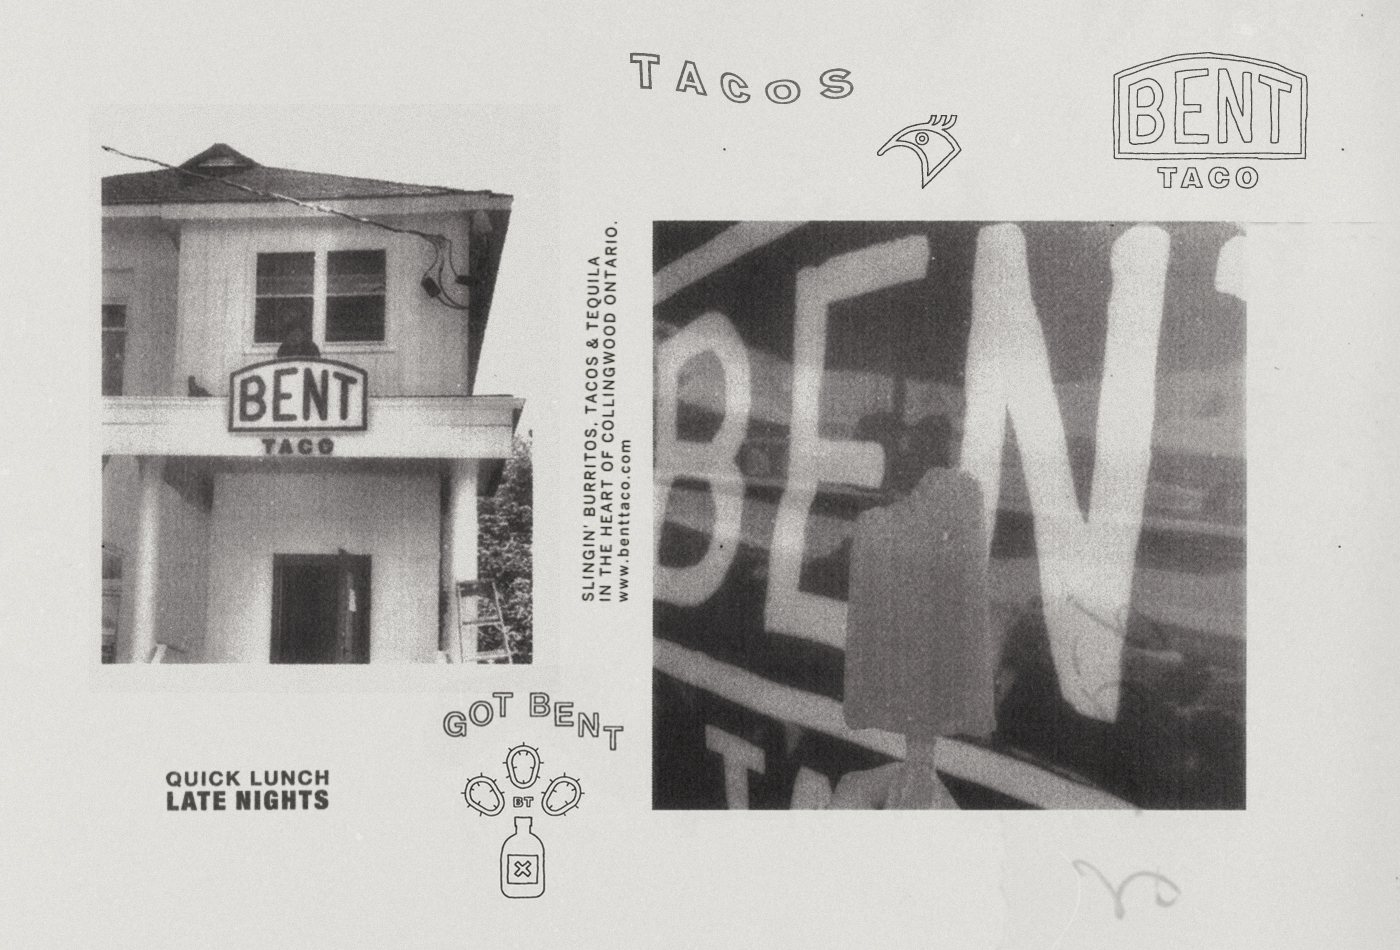 bent-taco-benttaco-signage-collingwood-tacos-vacaliebres-mexican-branding-identity-visual-graphicdesign